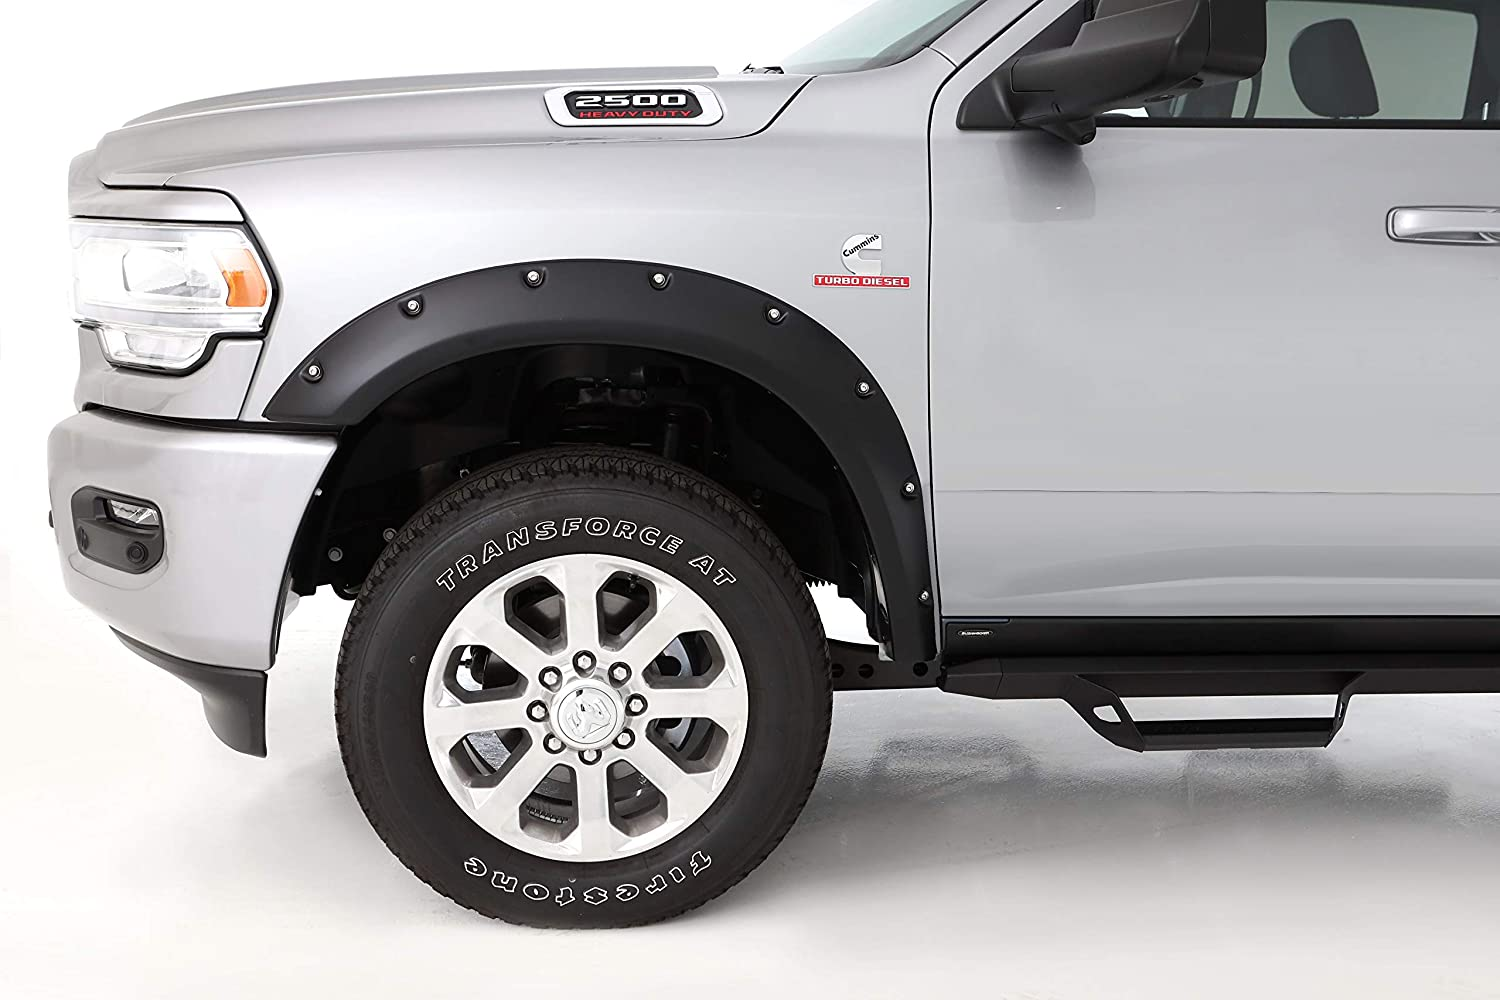 4-Piece Set for 2019 Dodge Ram 2500//3500 Bushwacker 50930-02 Black Pocket Style Fender Flares